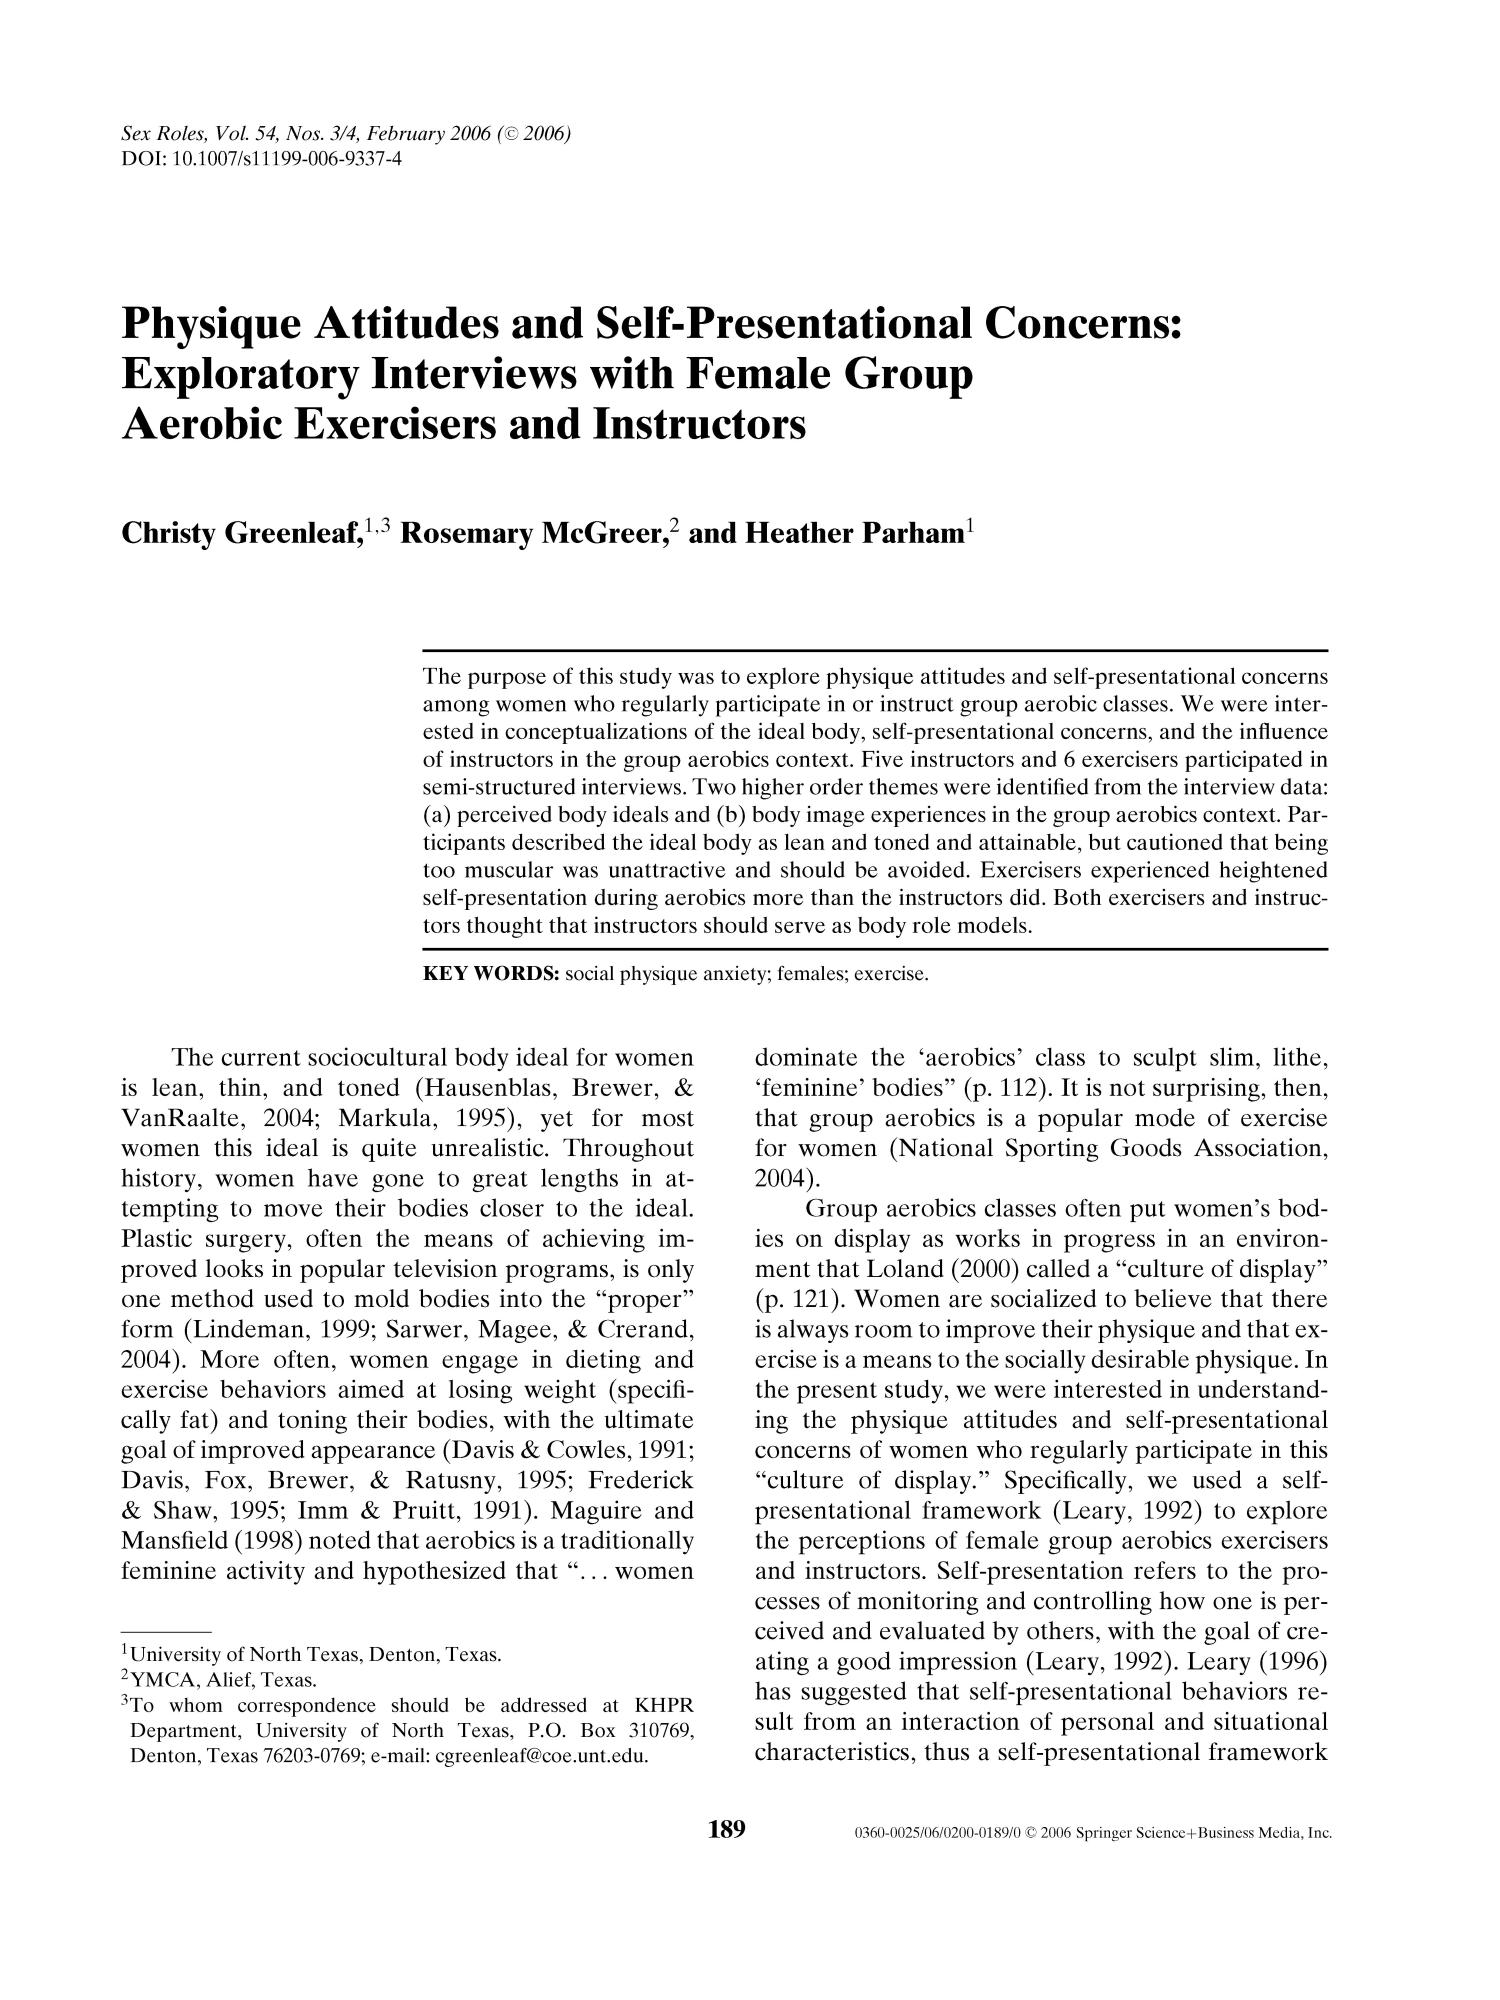 Physique Attitudes and Self-Presentational Concerns: Exploratory Interviews with Female Group Aerobic Exercisers and Instructors                                                                                                      189